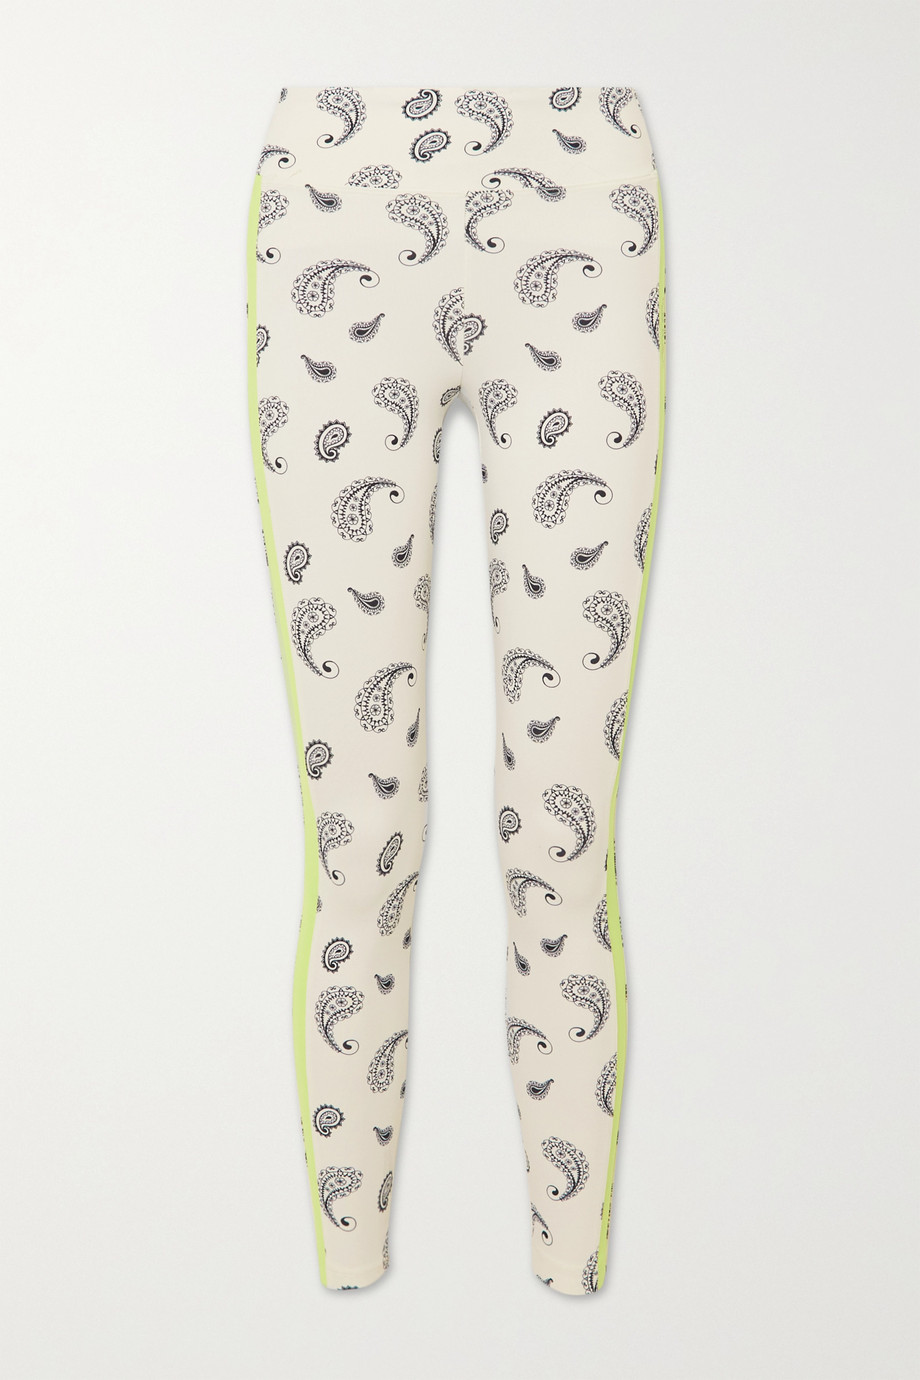 KORAL Dynamic Duo paisley-print stretch leggings